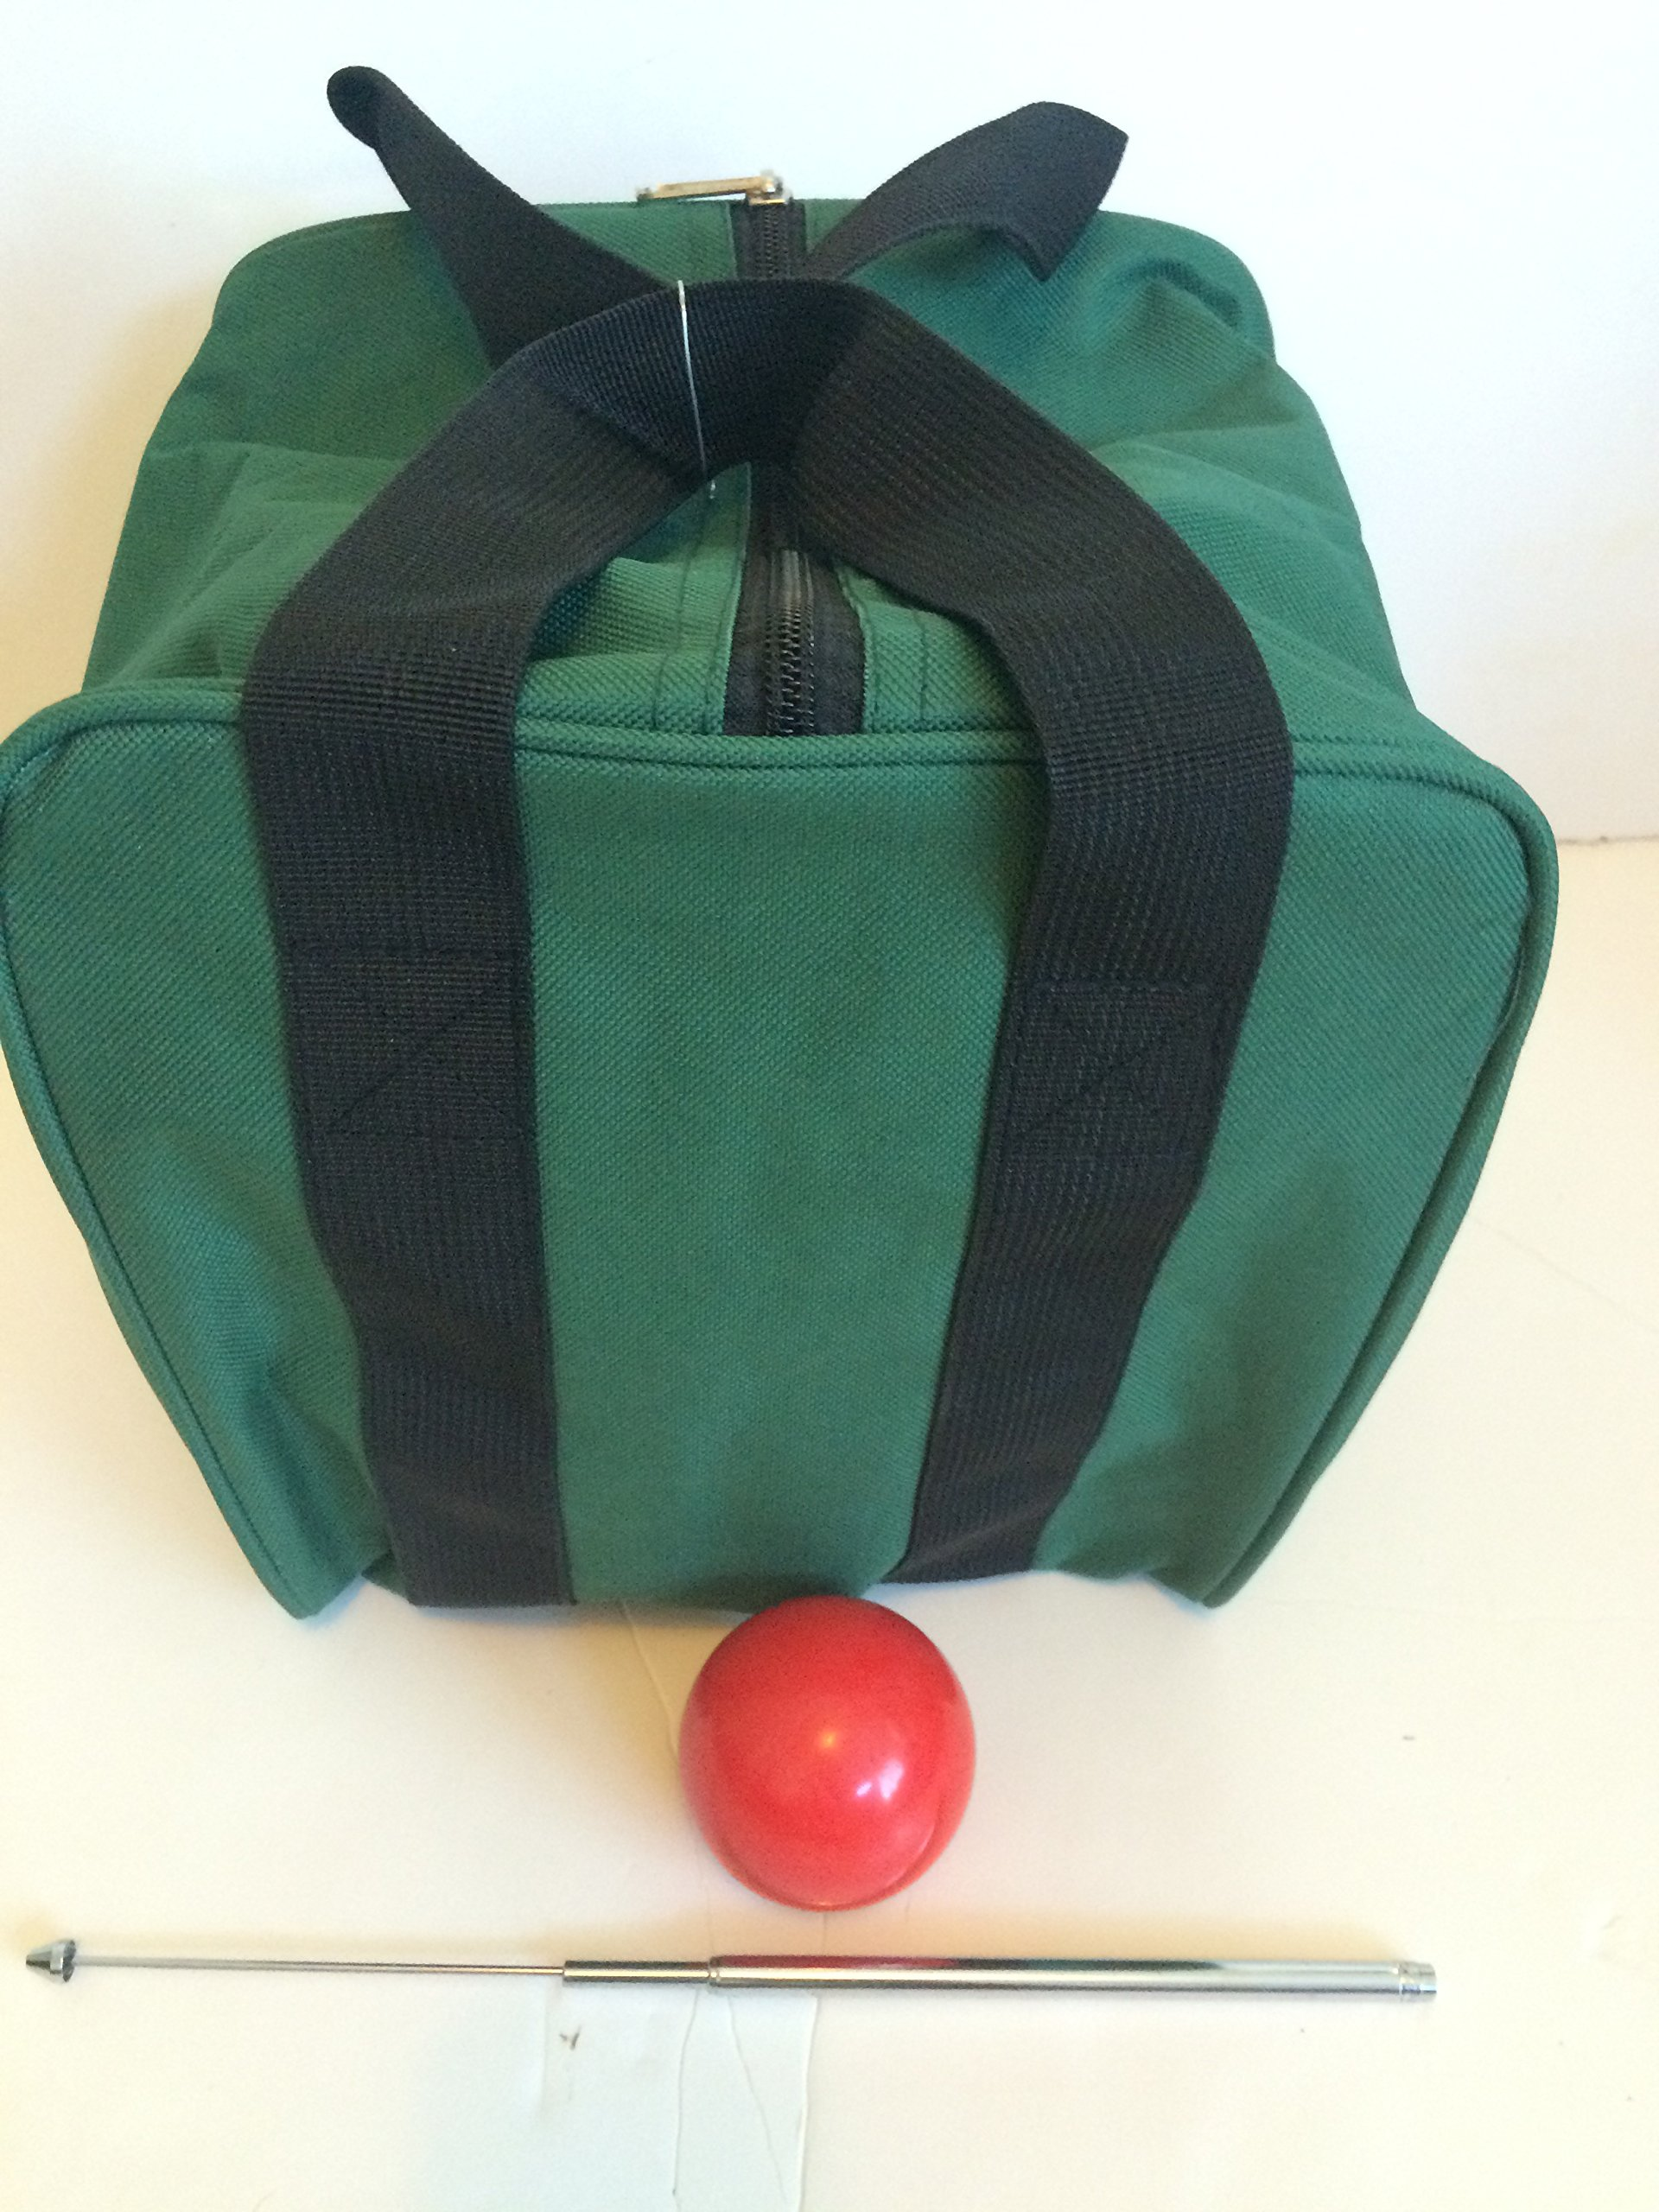 Unique Bocce Accessories Package - Extra Heavy Duty Nylon Bocce Bag (Green with Black Handles), red pallina, Extendable Measuring Device